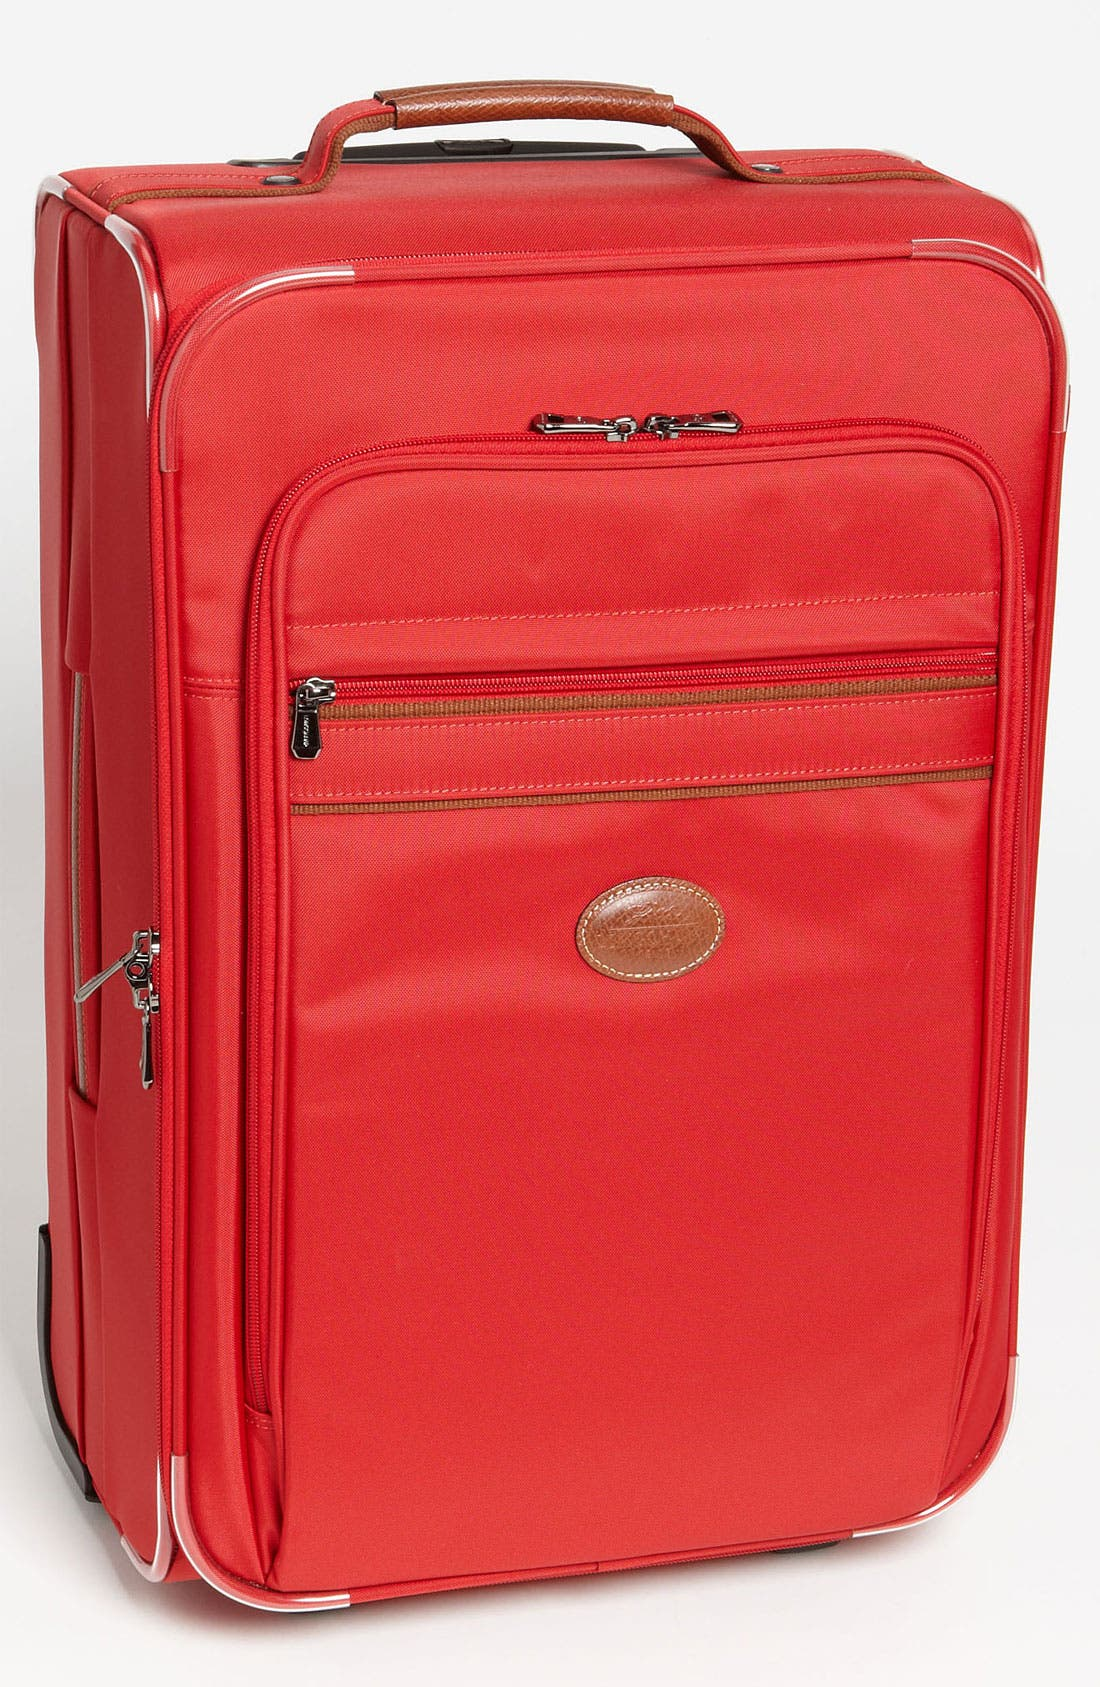 Main Image - Longchamp 'Le Pliage' Wheeled Carry-On Suitcase